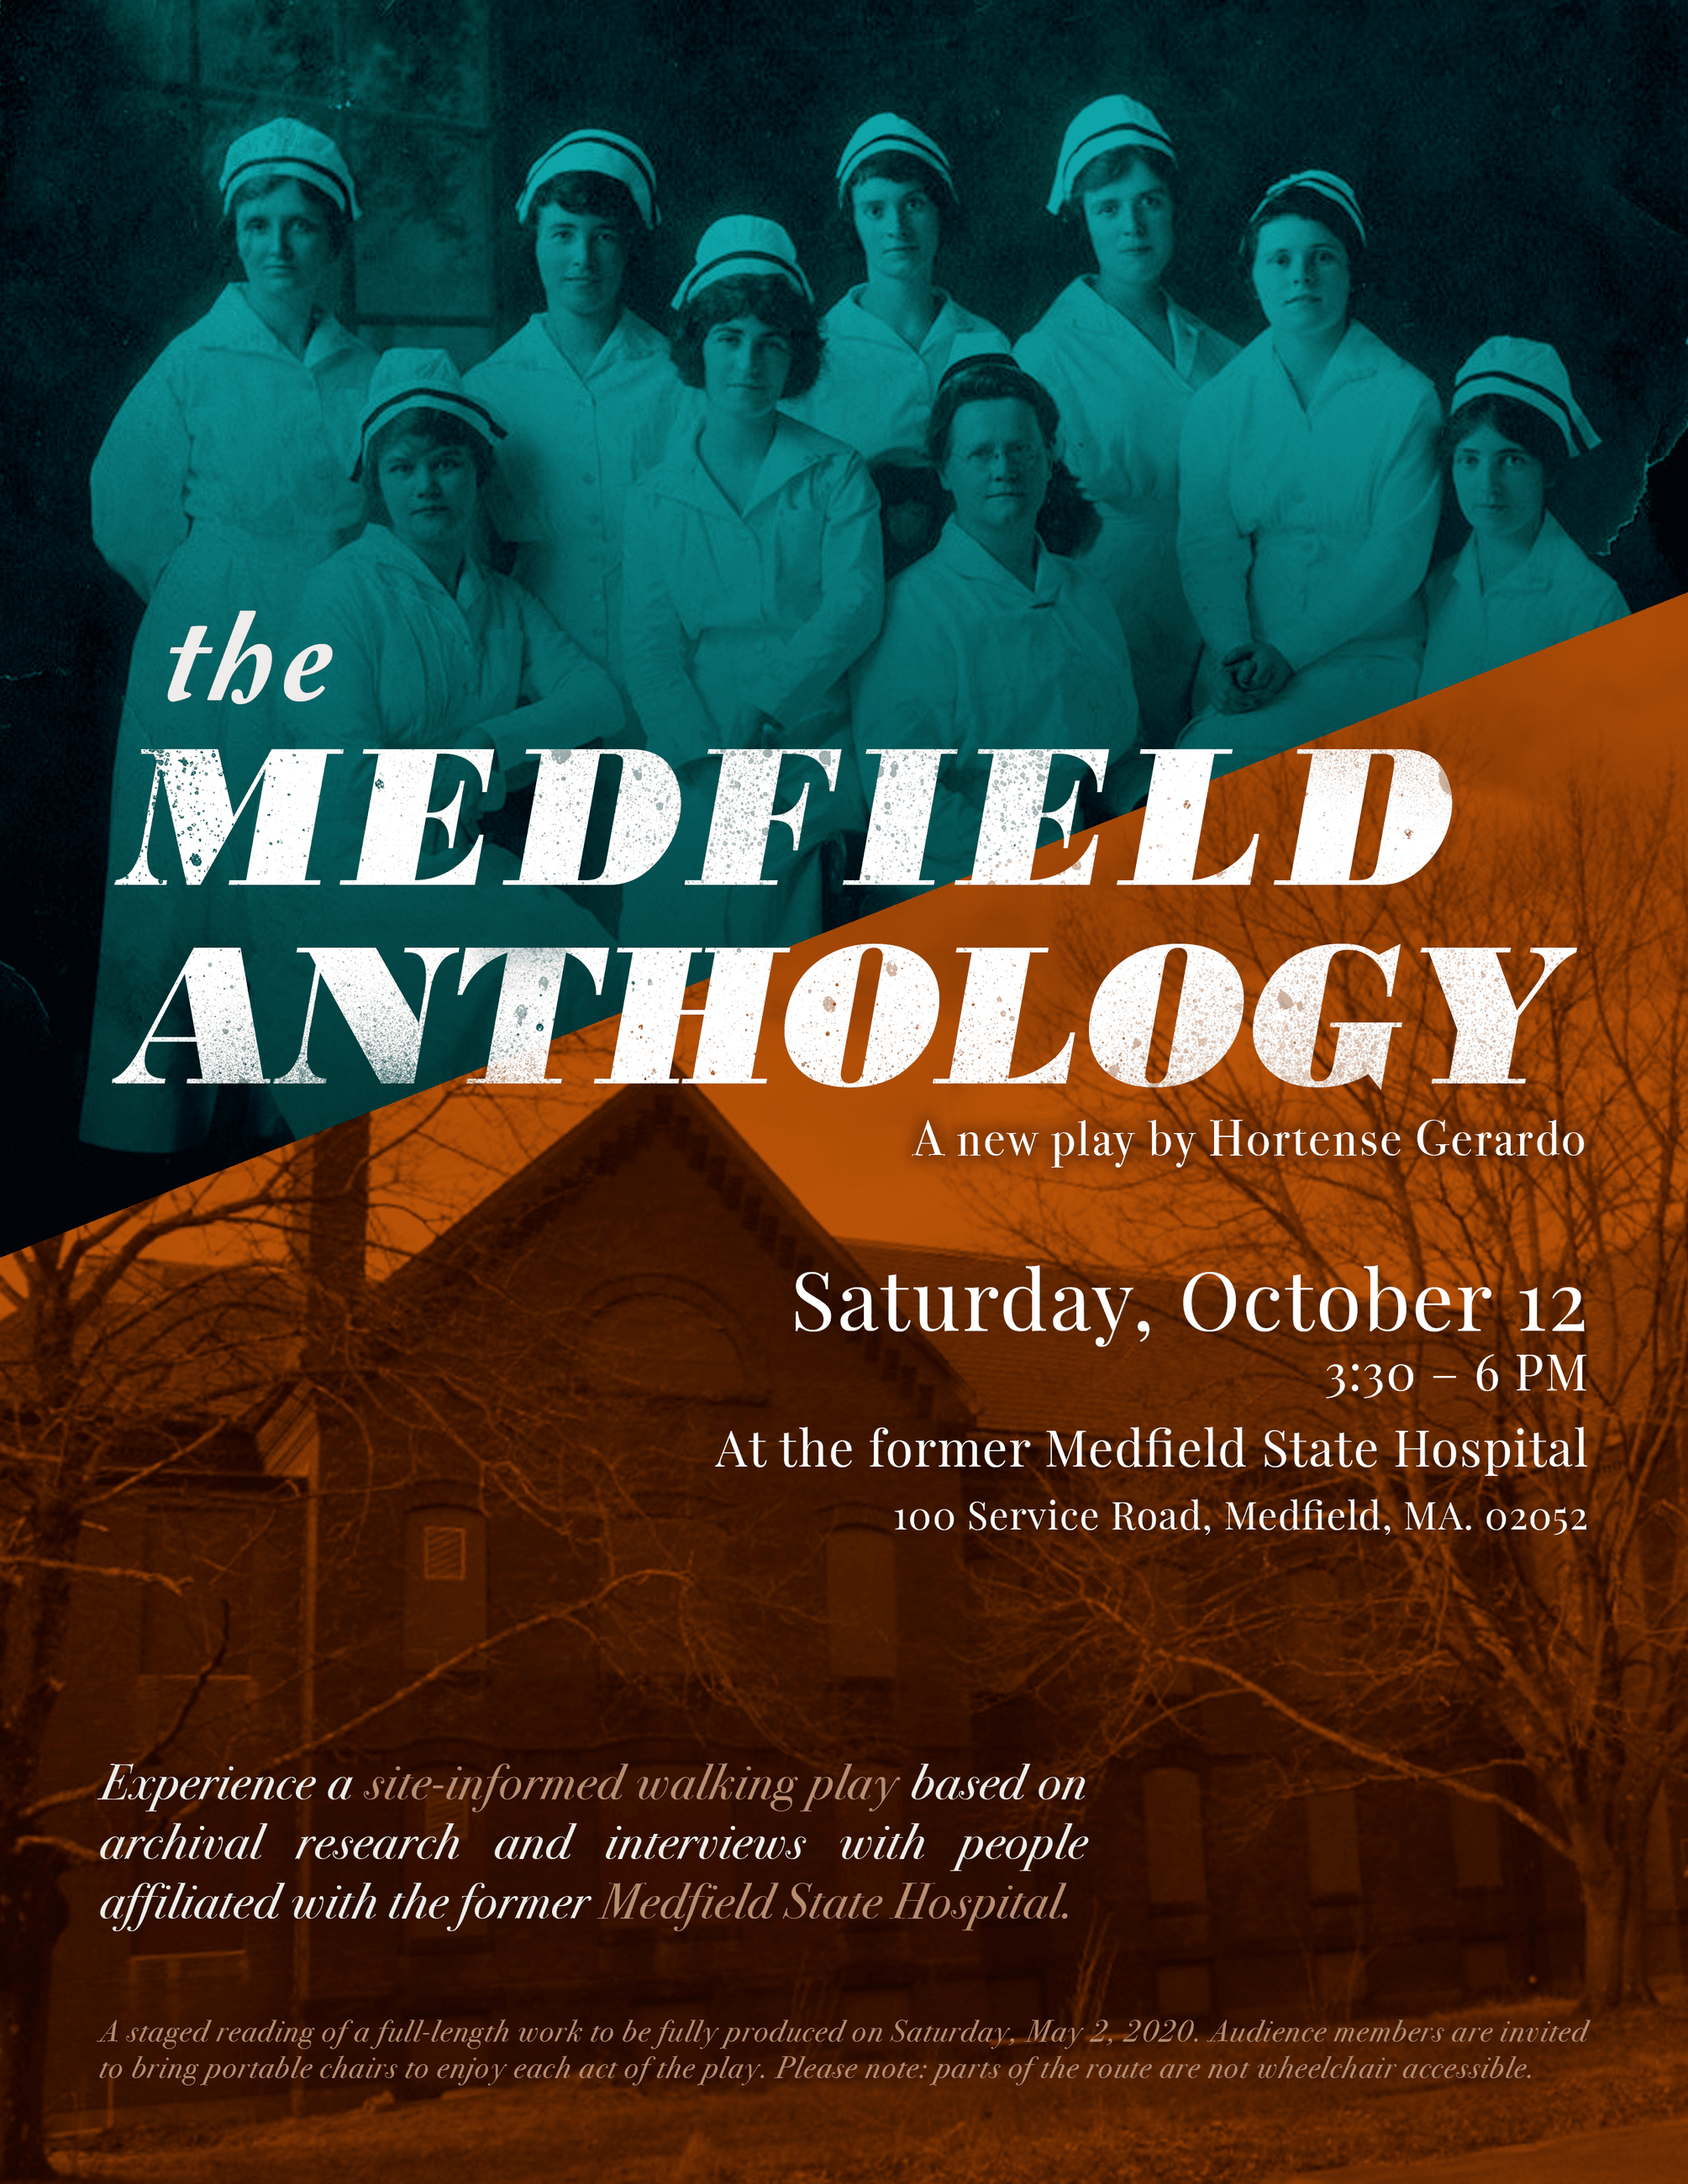 medfield-anthology-print